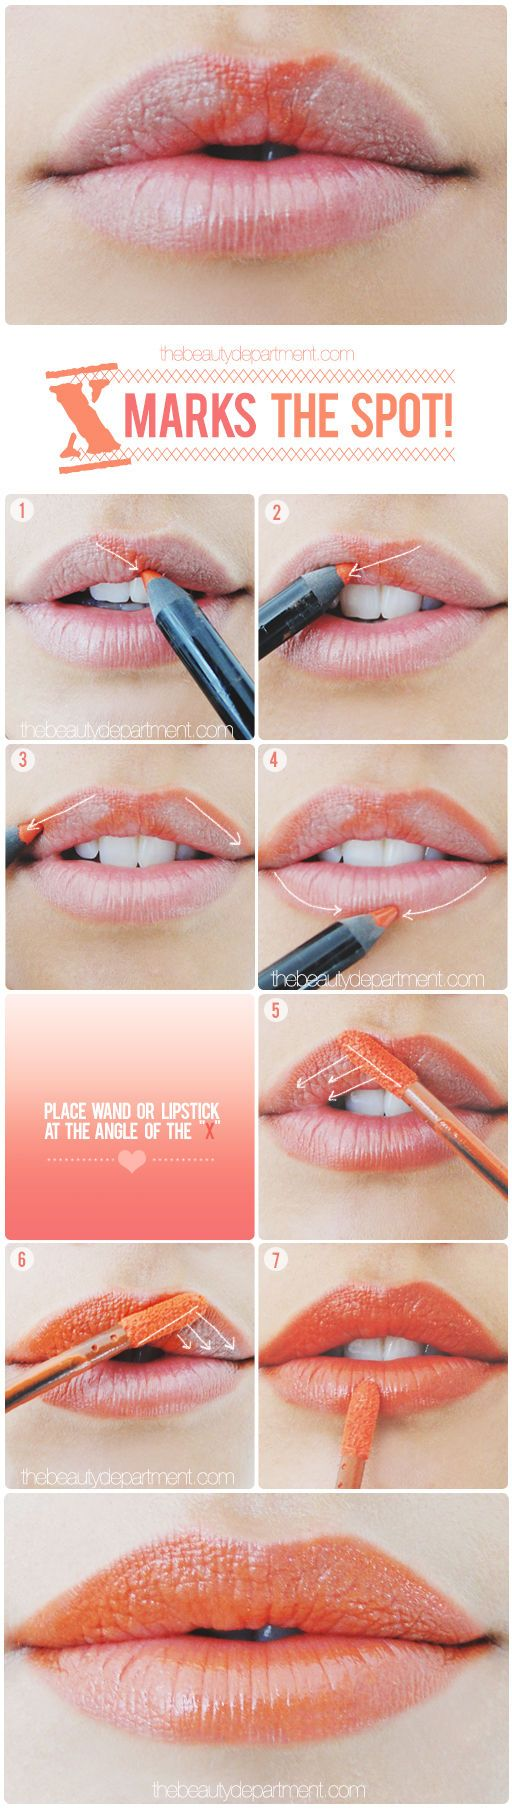 Try this trick for perfect lipstick application. For all the best makeup and beauty products, visit www.amazingbeautifulyou,com